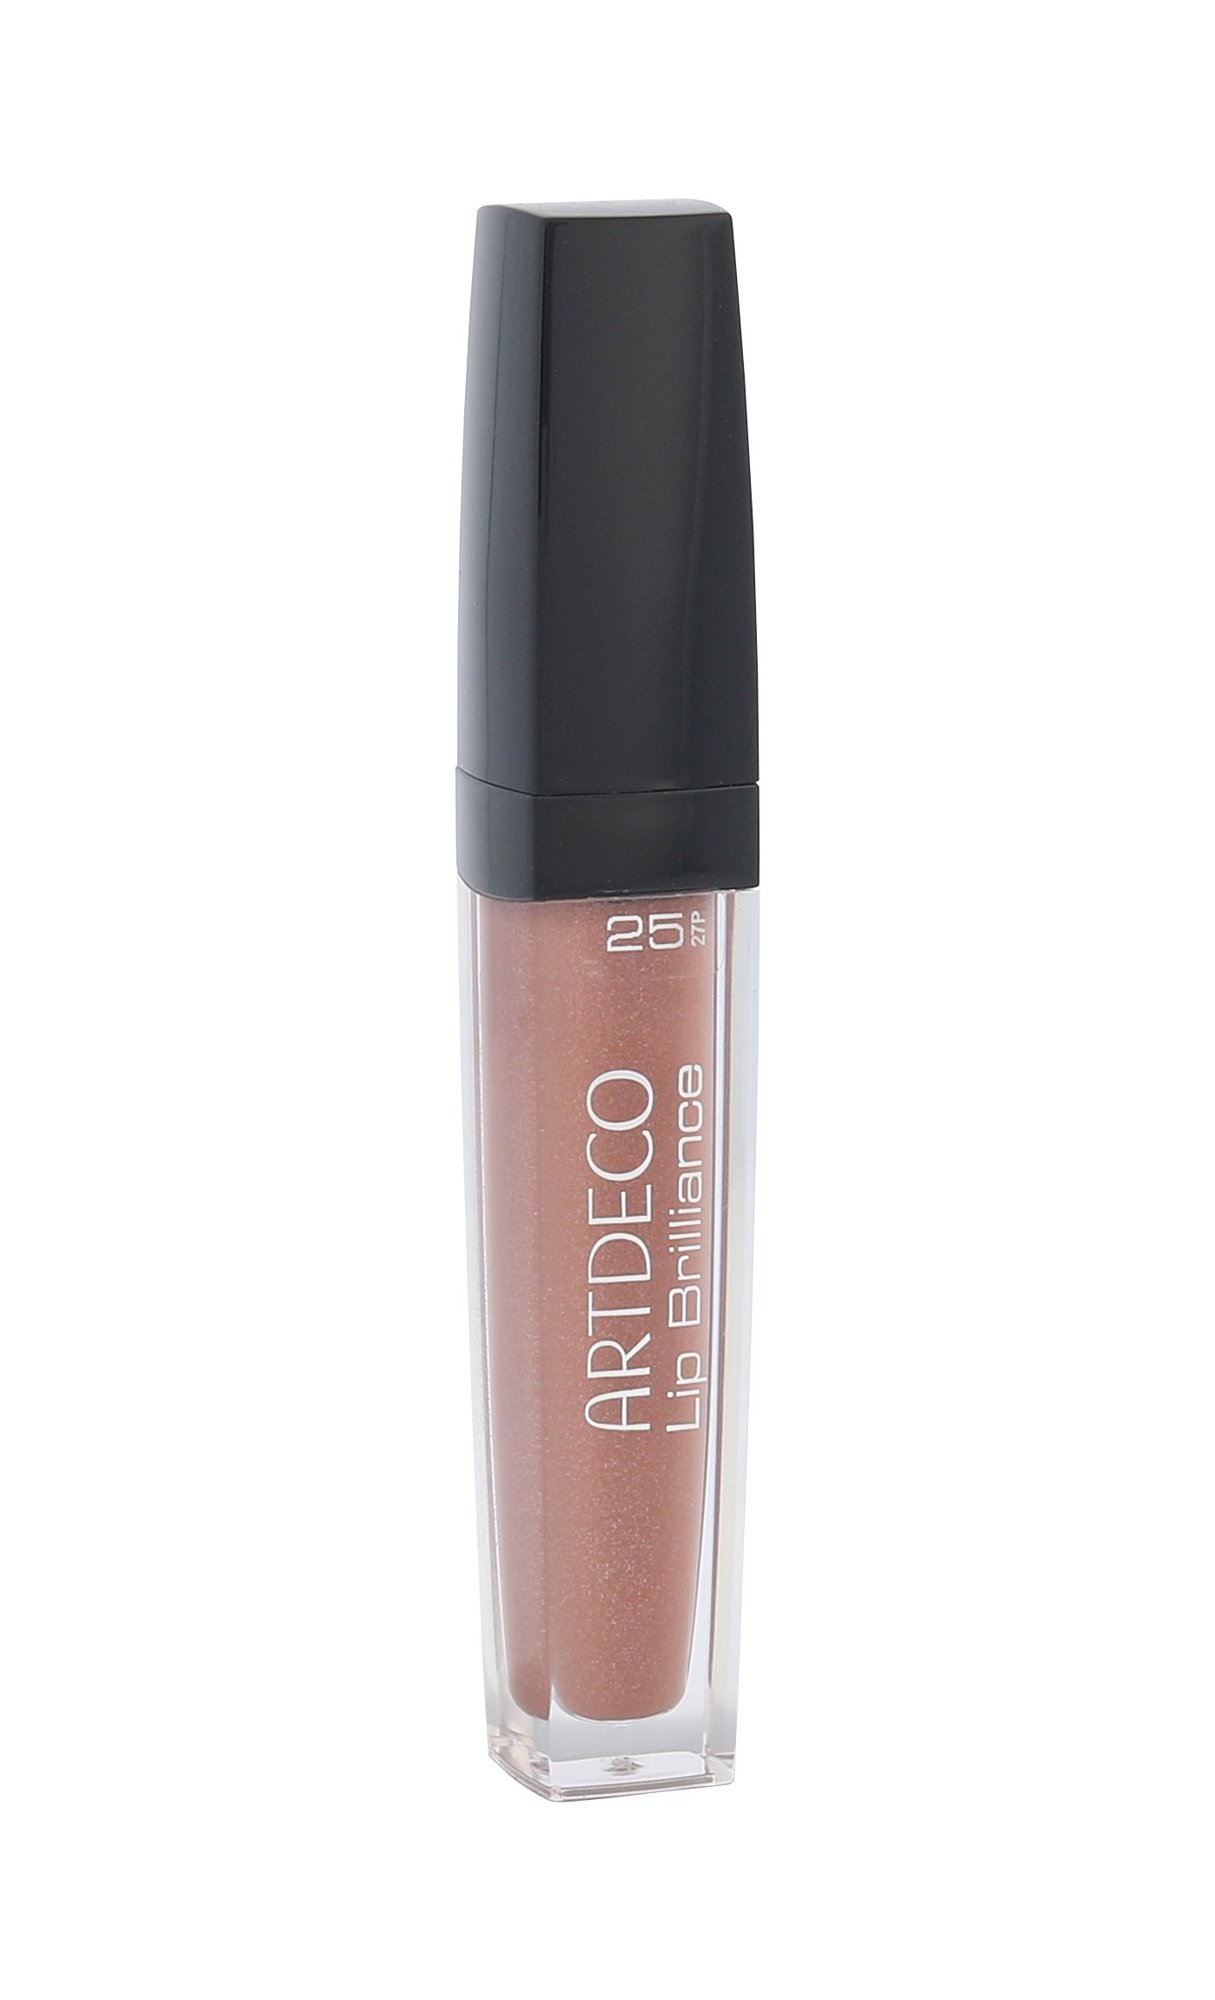 Artdeco Lip Brilliance Cosmetic 5ml 25 Brilliant Fawn